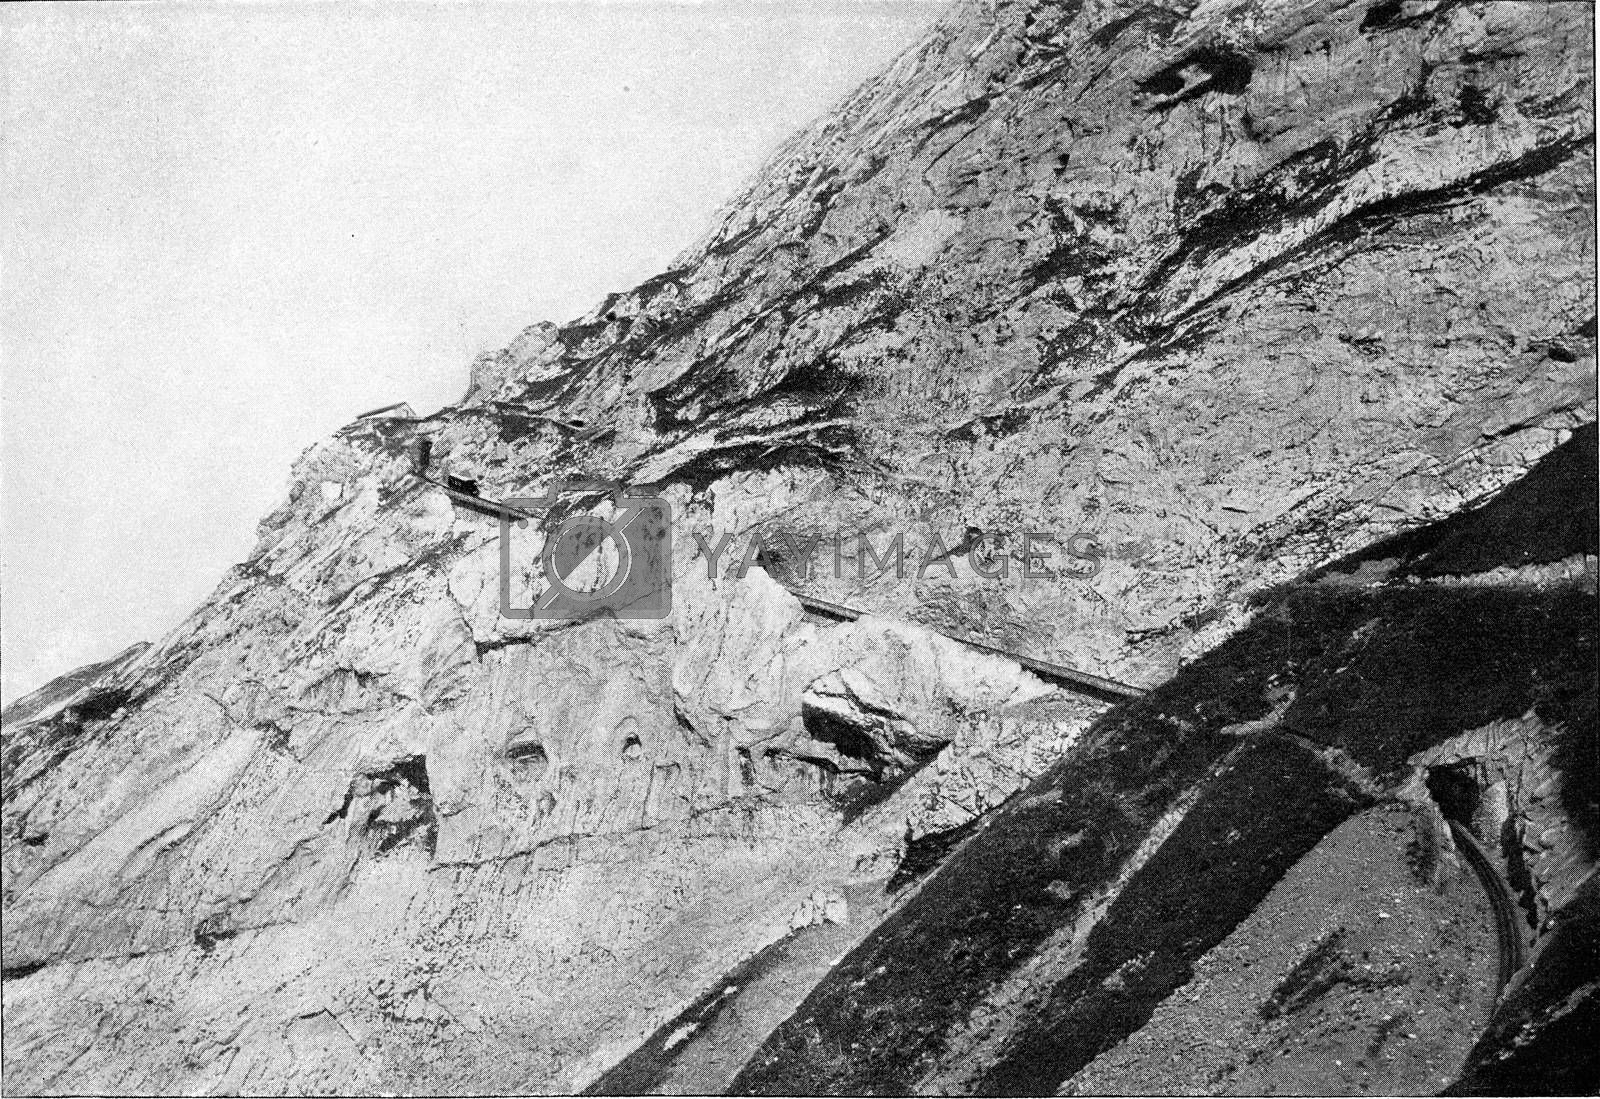 The Evel slope at Mount Pilatus and the cogwheel railway leading to its summit, vintage engraved illustration. From the Universe and Humanity, 1910.